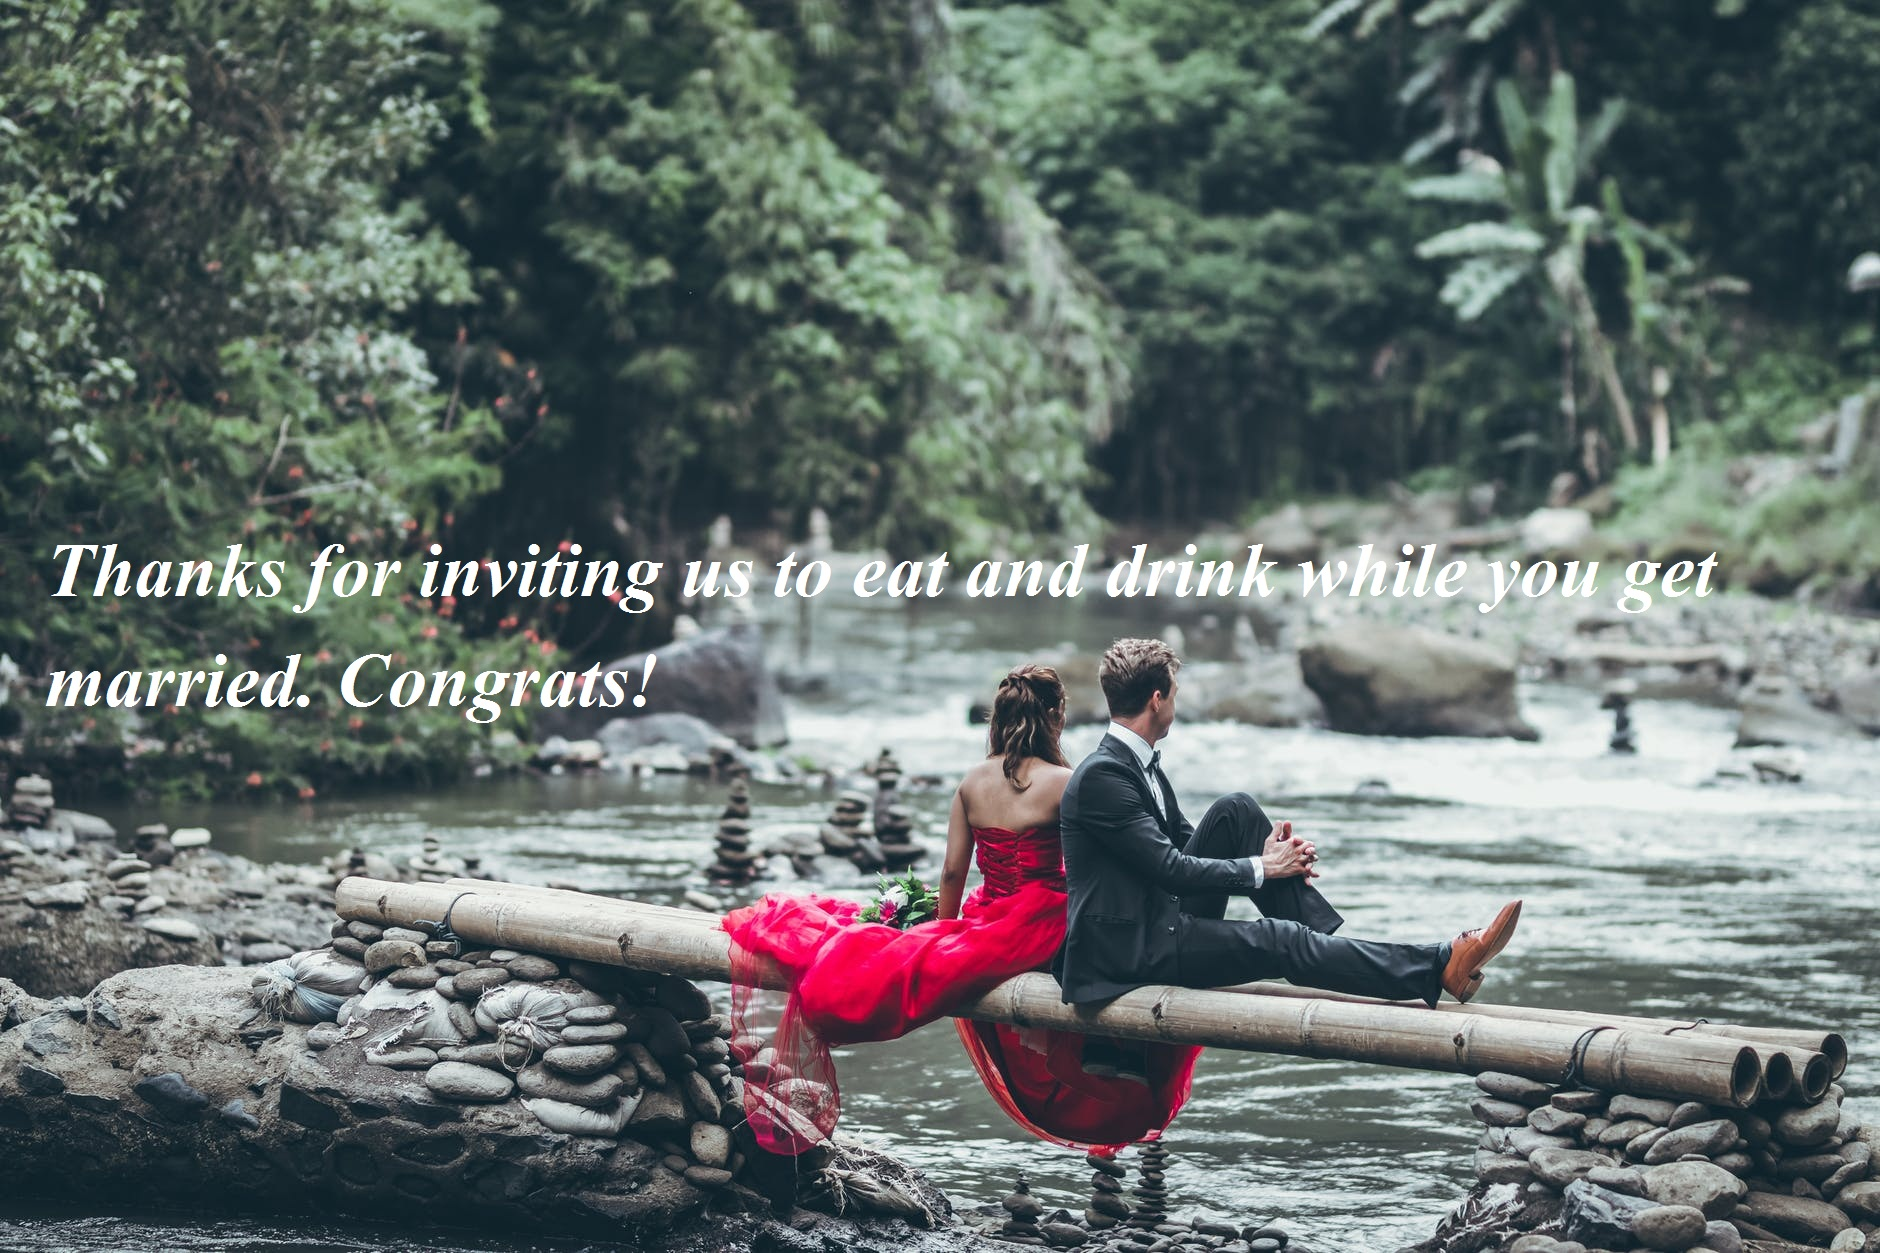 Best Marriage Wishes Quotes